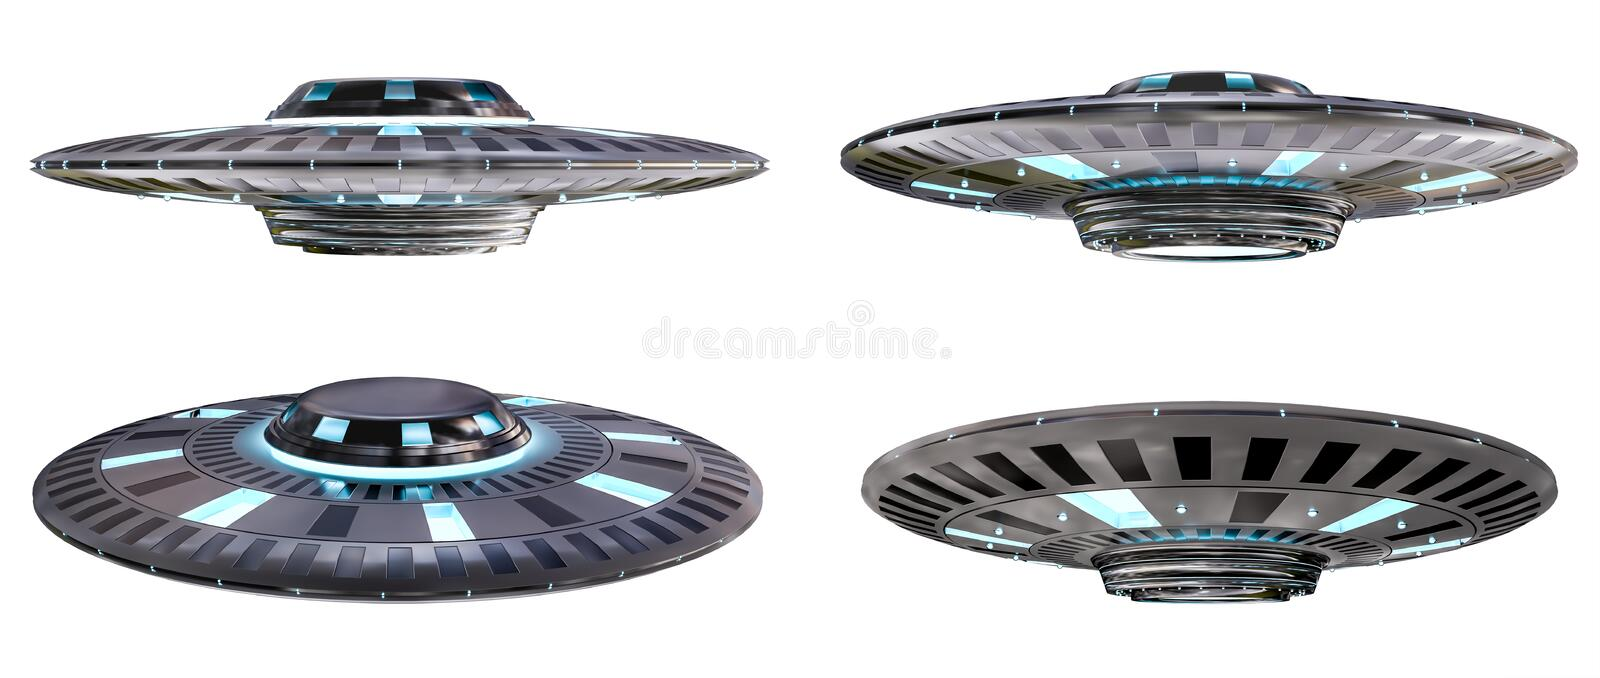 Vintage UFO collection isolated on white background 3D rendering stock illustration